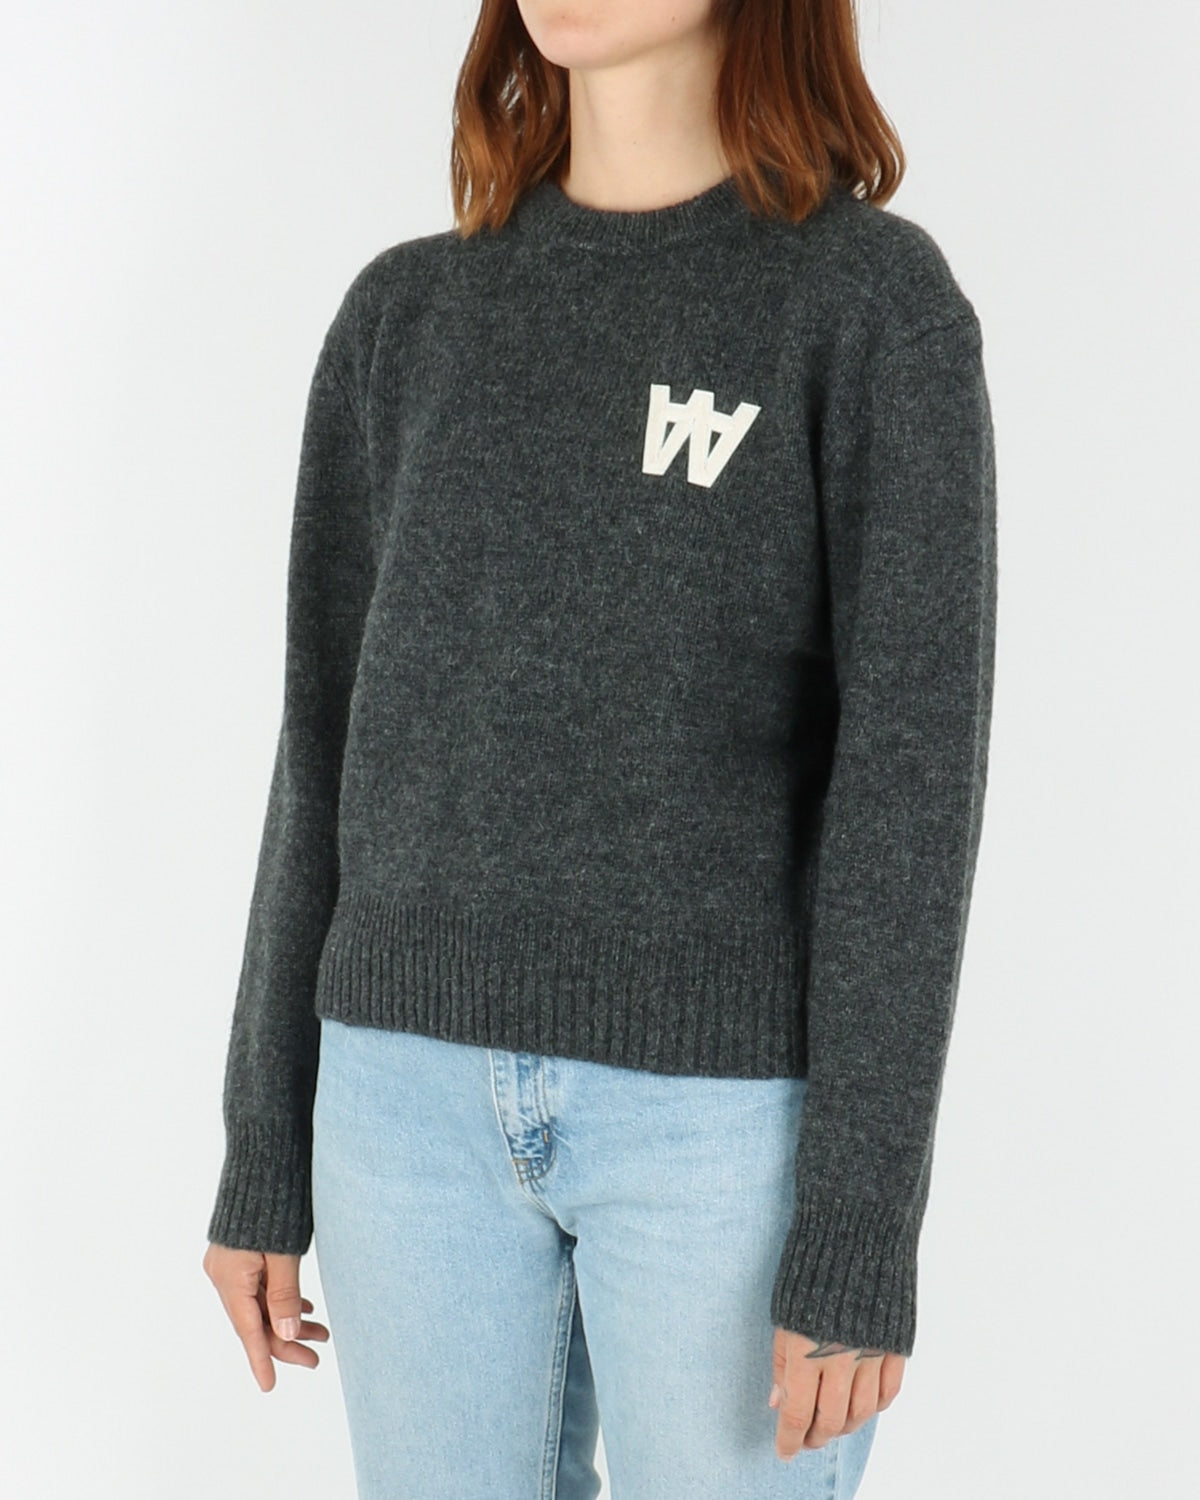 wood wood_anneli sweater_dark grey melange_view_2_3